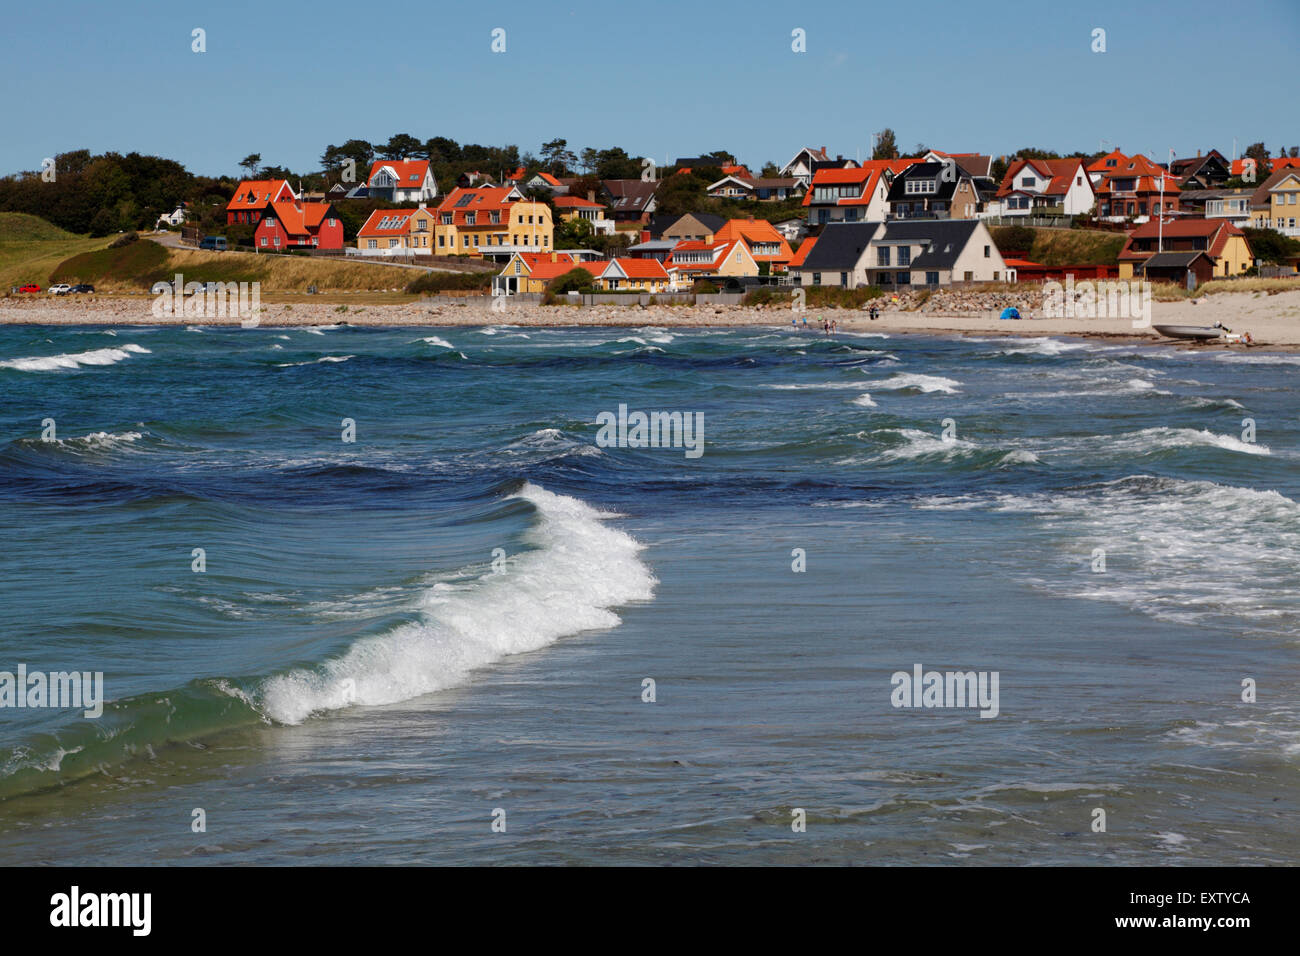 Surf at Hundested Beach on a summer's day - Stock Image